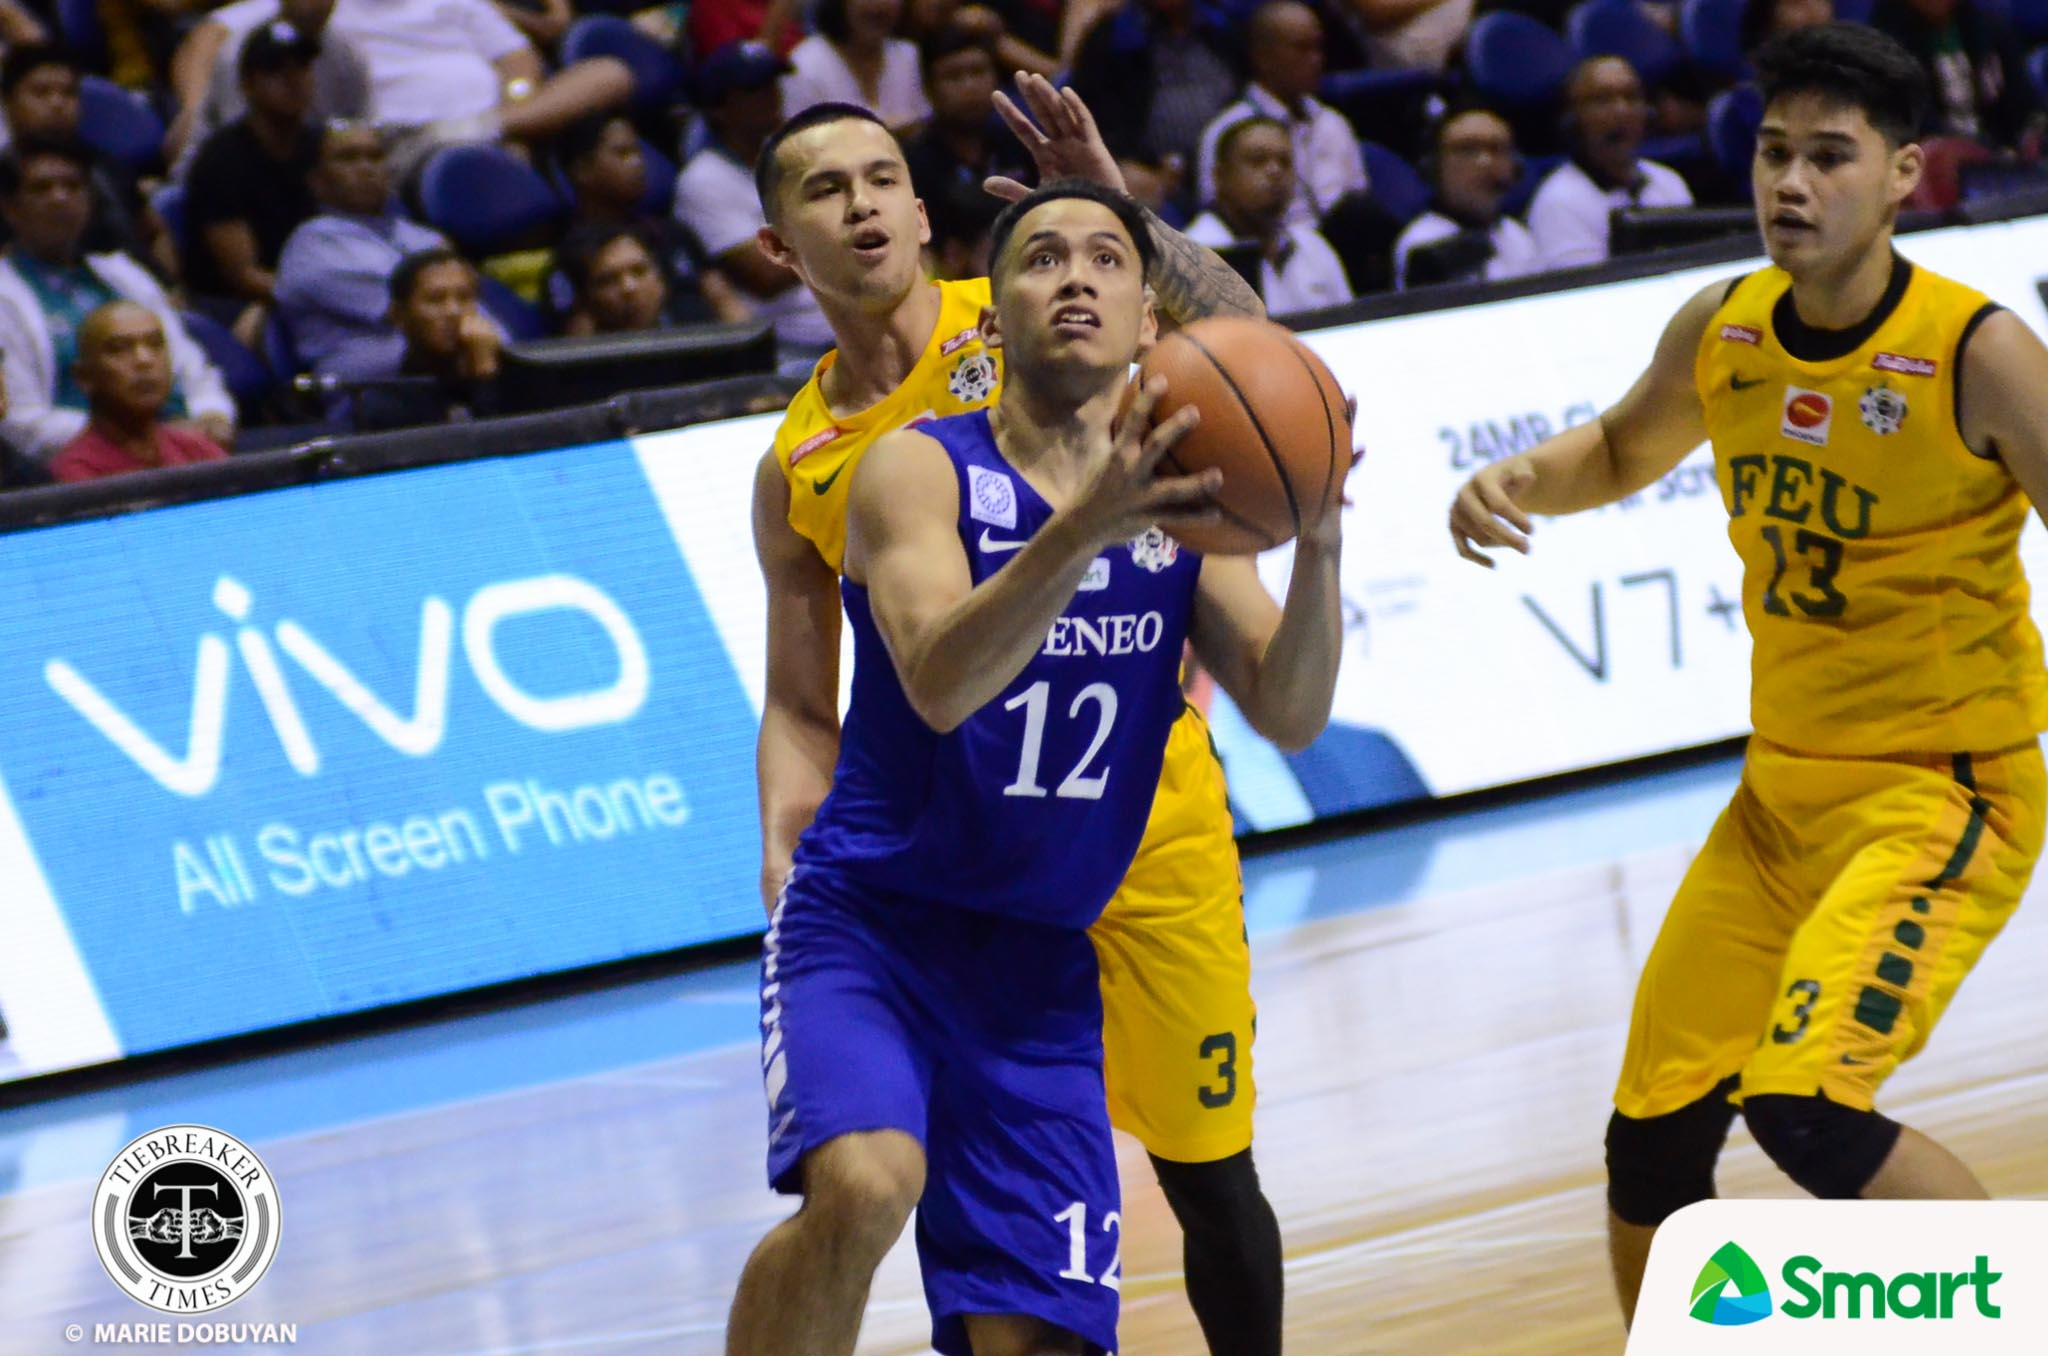 Philippine Sports News - Tiebreaker Times Ateneo locks FEU down late to clinch Final Four spot ADMU Basketball FEU News UAAP  UAAP Season 80 Men's Basketball UAAP Season 80 Tab Baldwin Ron Dennison Raffy Verano Olsen Racela Matt Nieto FEU Men's Basketball Ateneo Men's Basketball Arvin Tolentino